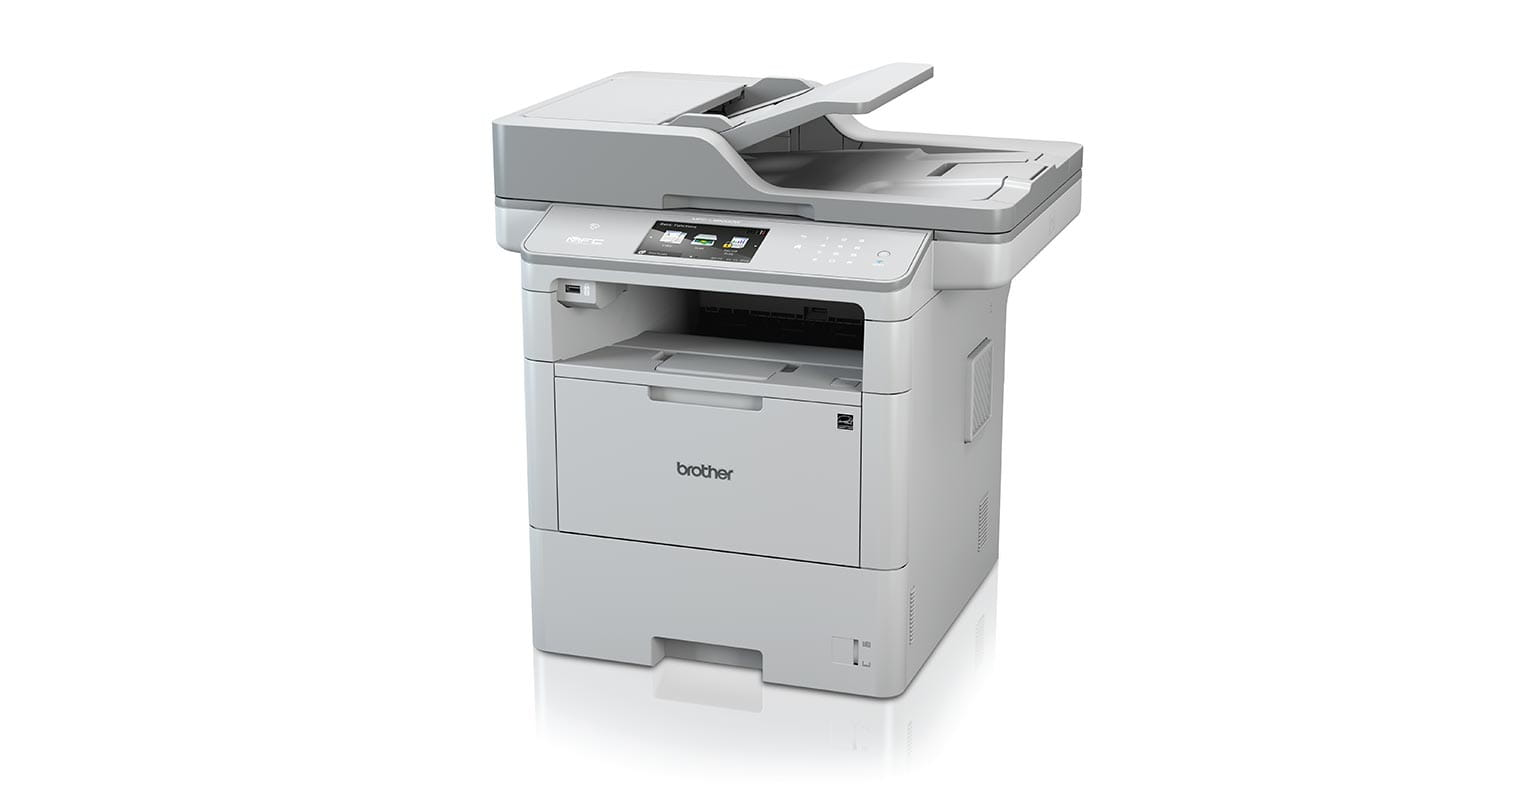 MFC-L6900DW Mono laser printer all-in-one